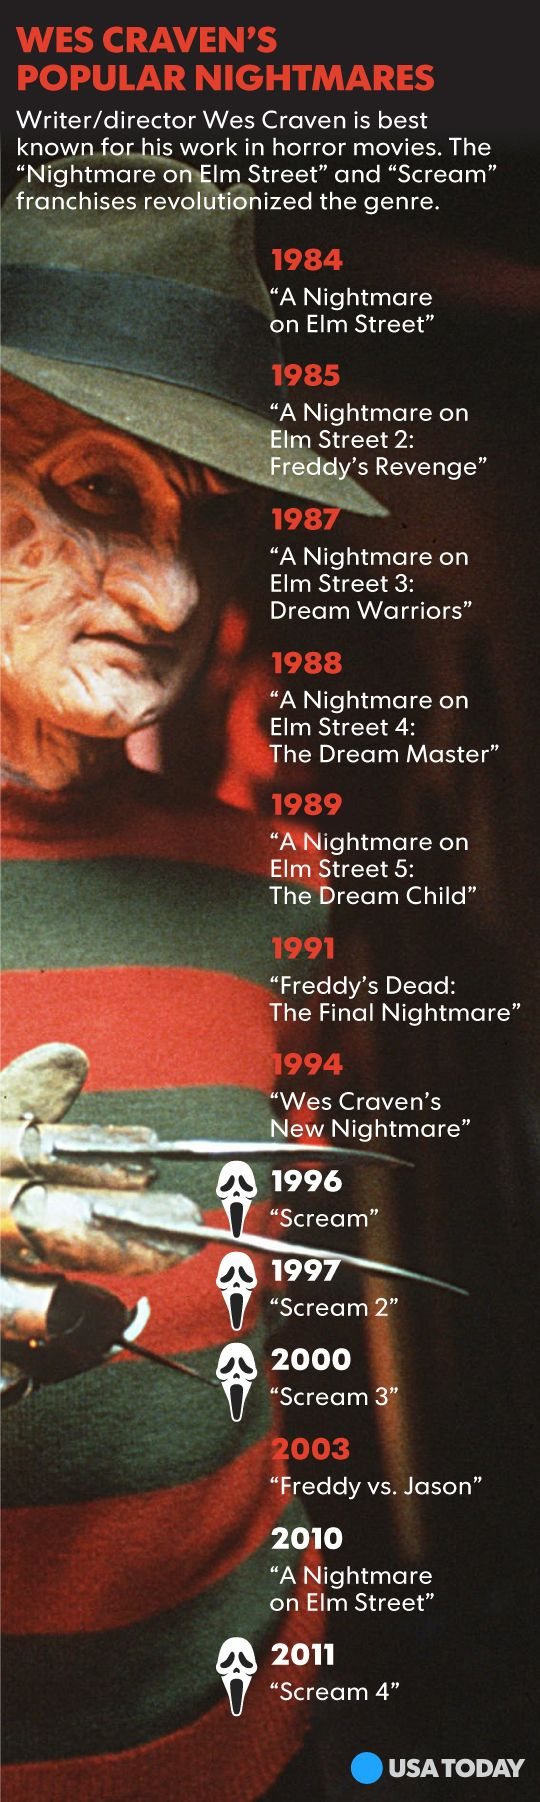 Horror director Wes Craven dies at 76 R.I.P his classic work will live on